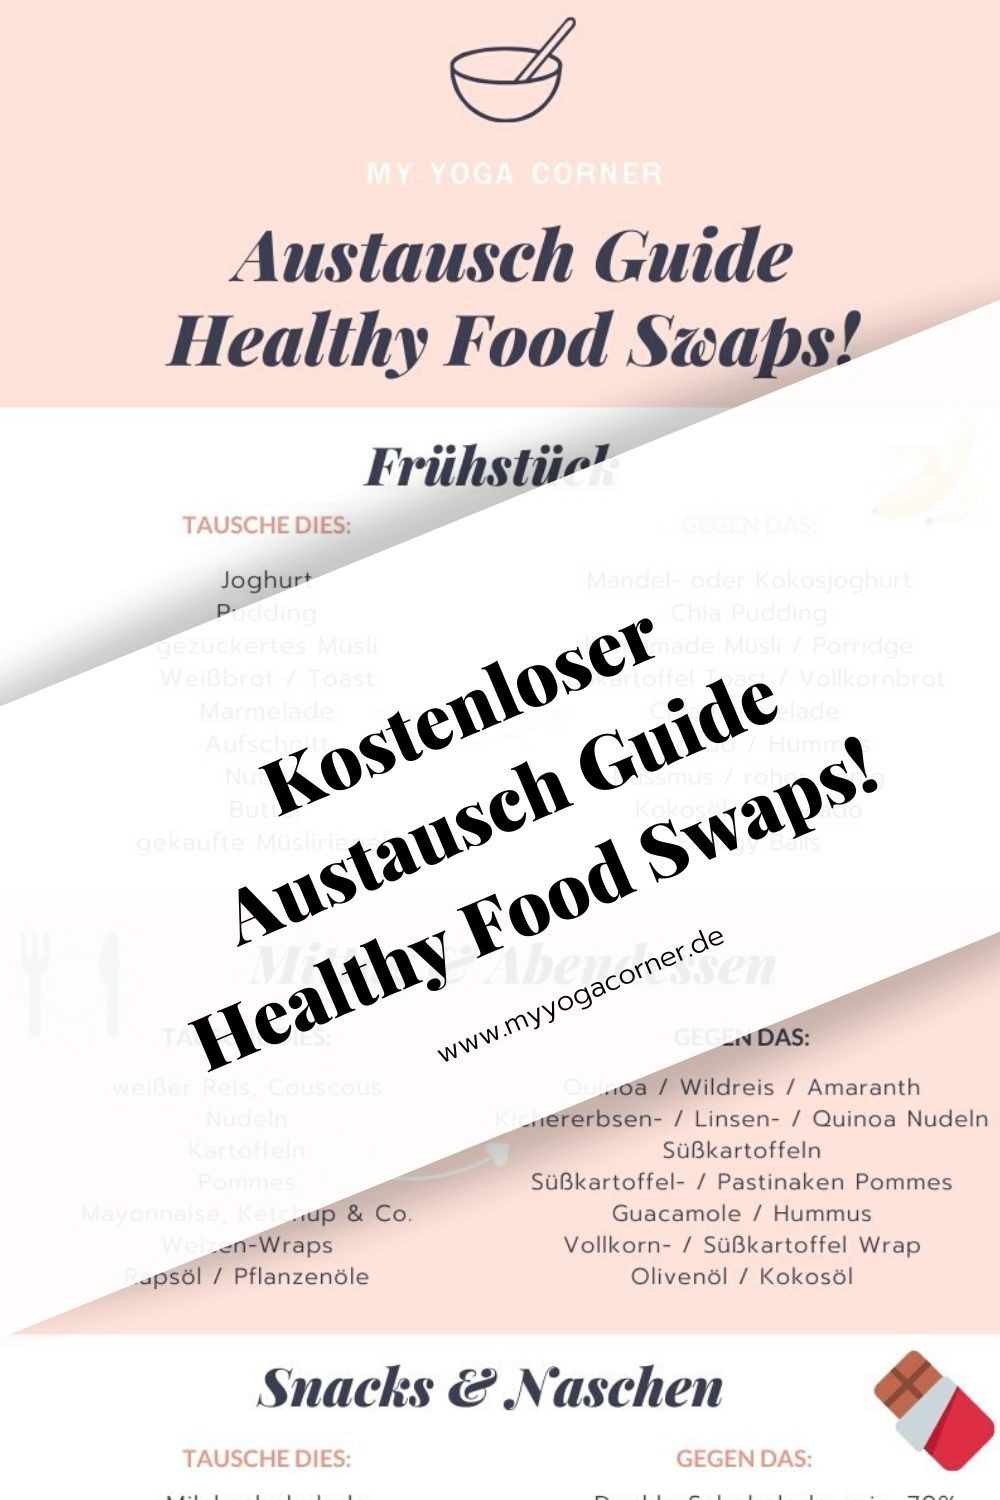 Dein Austausch Guide - Healthy Food Swaps! #austauschguide #guide #food #swaps #easy #healthy #lifestyle #gesund #vegan #clean #eating #recipe #inspiration